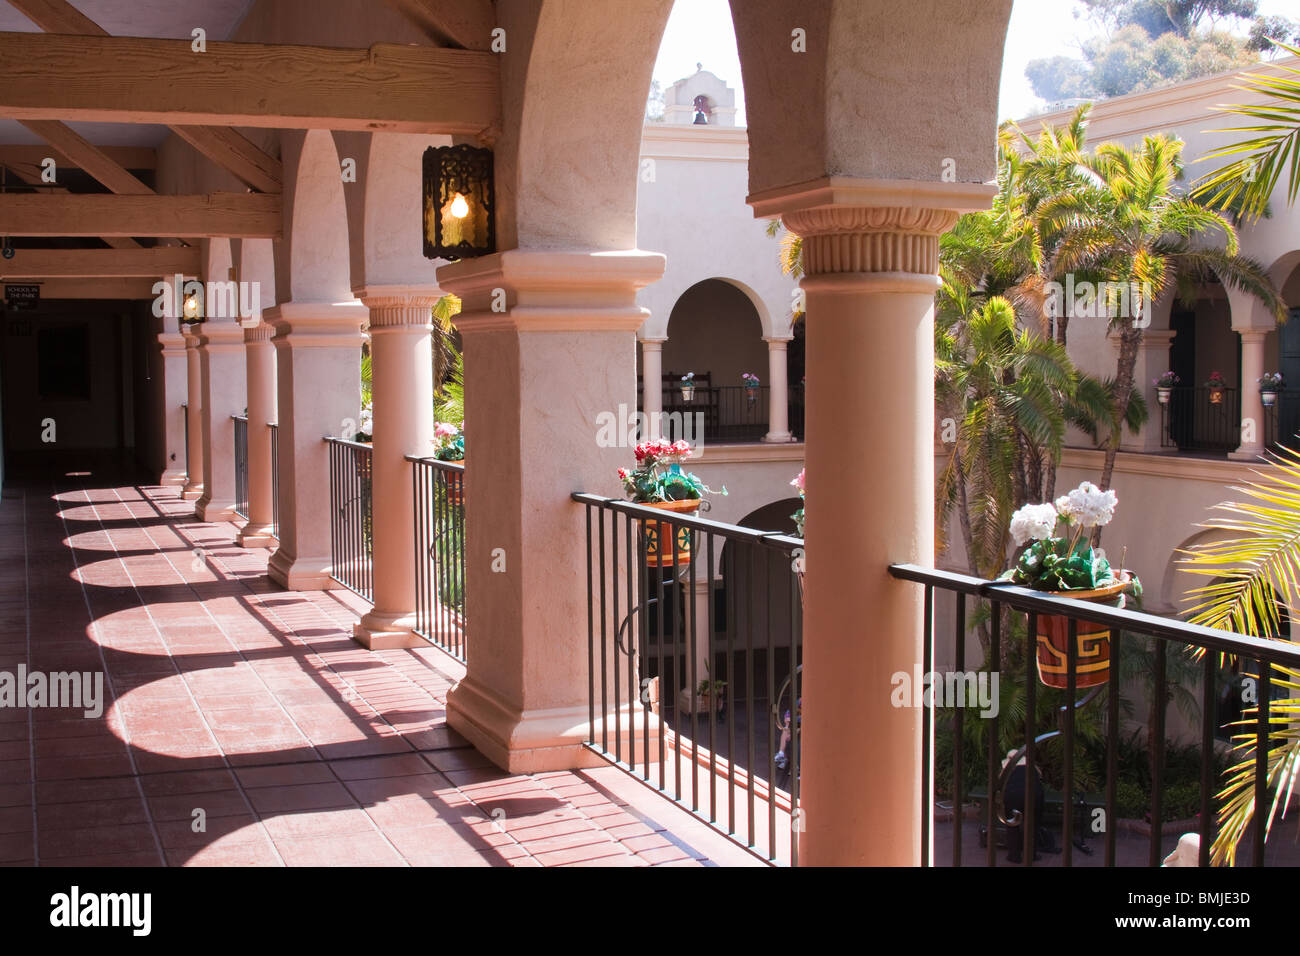 Arched columns along second story portico in Balboa Park visitor center courtyard - Stock Image